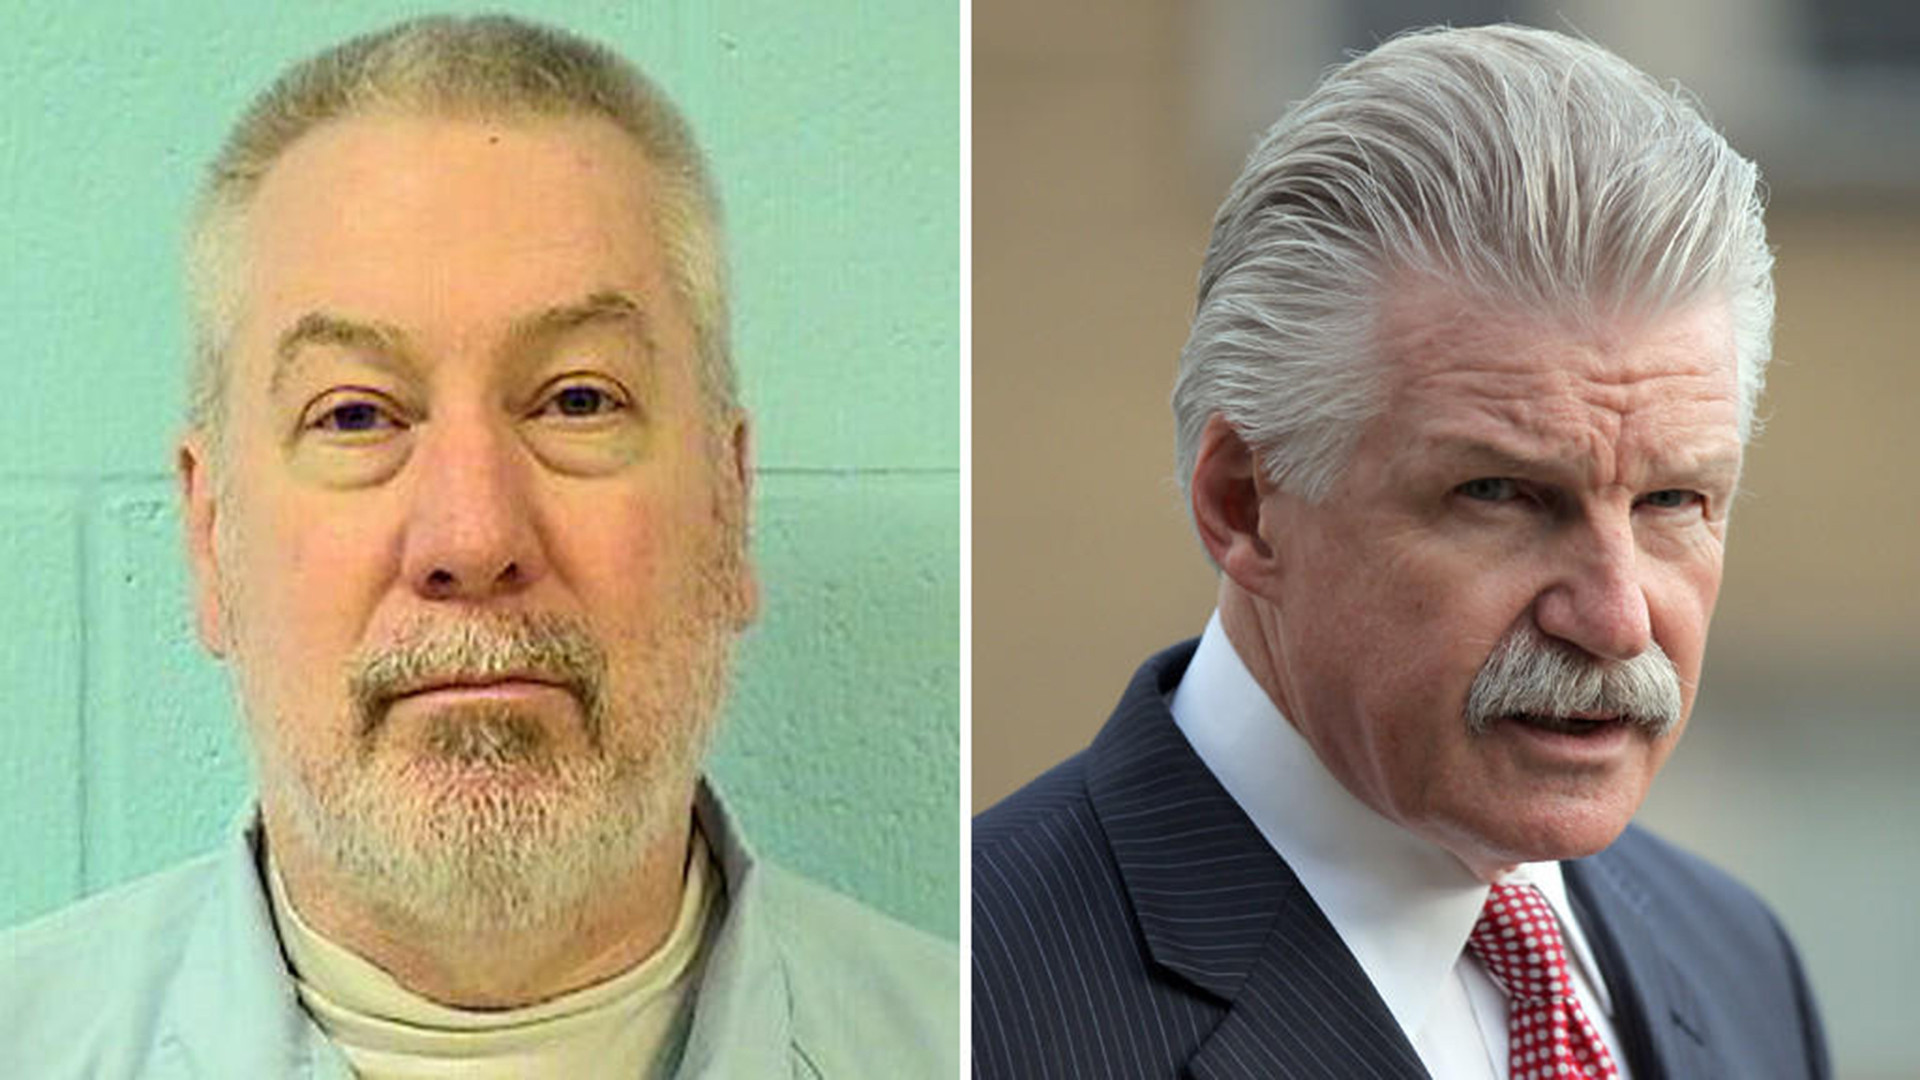 Drew Peterson gets 40 extra years for plot to kill prosecutor  Chicago Tribune